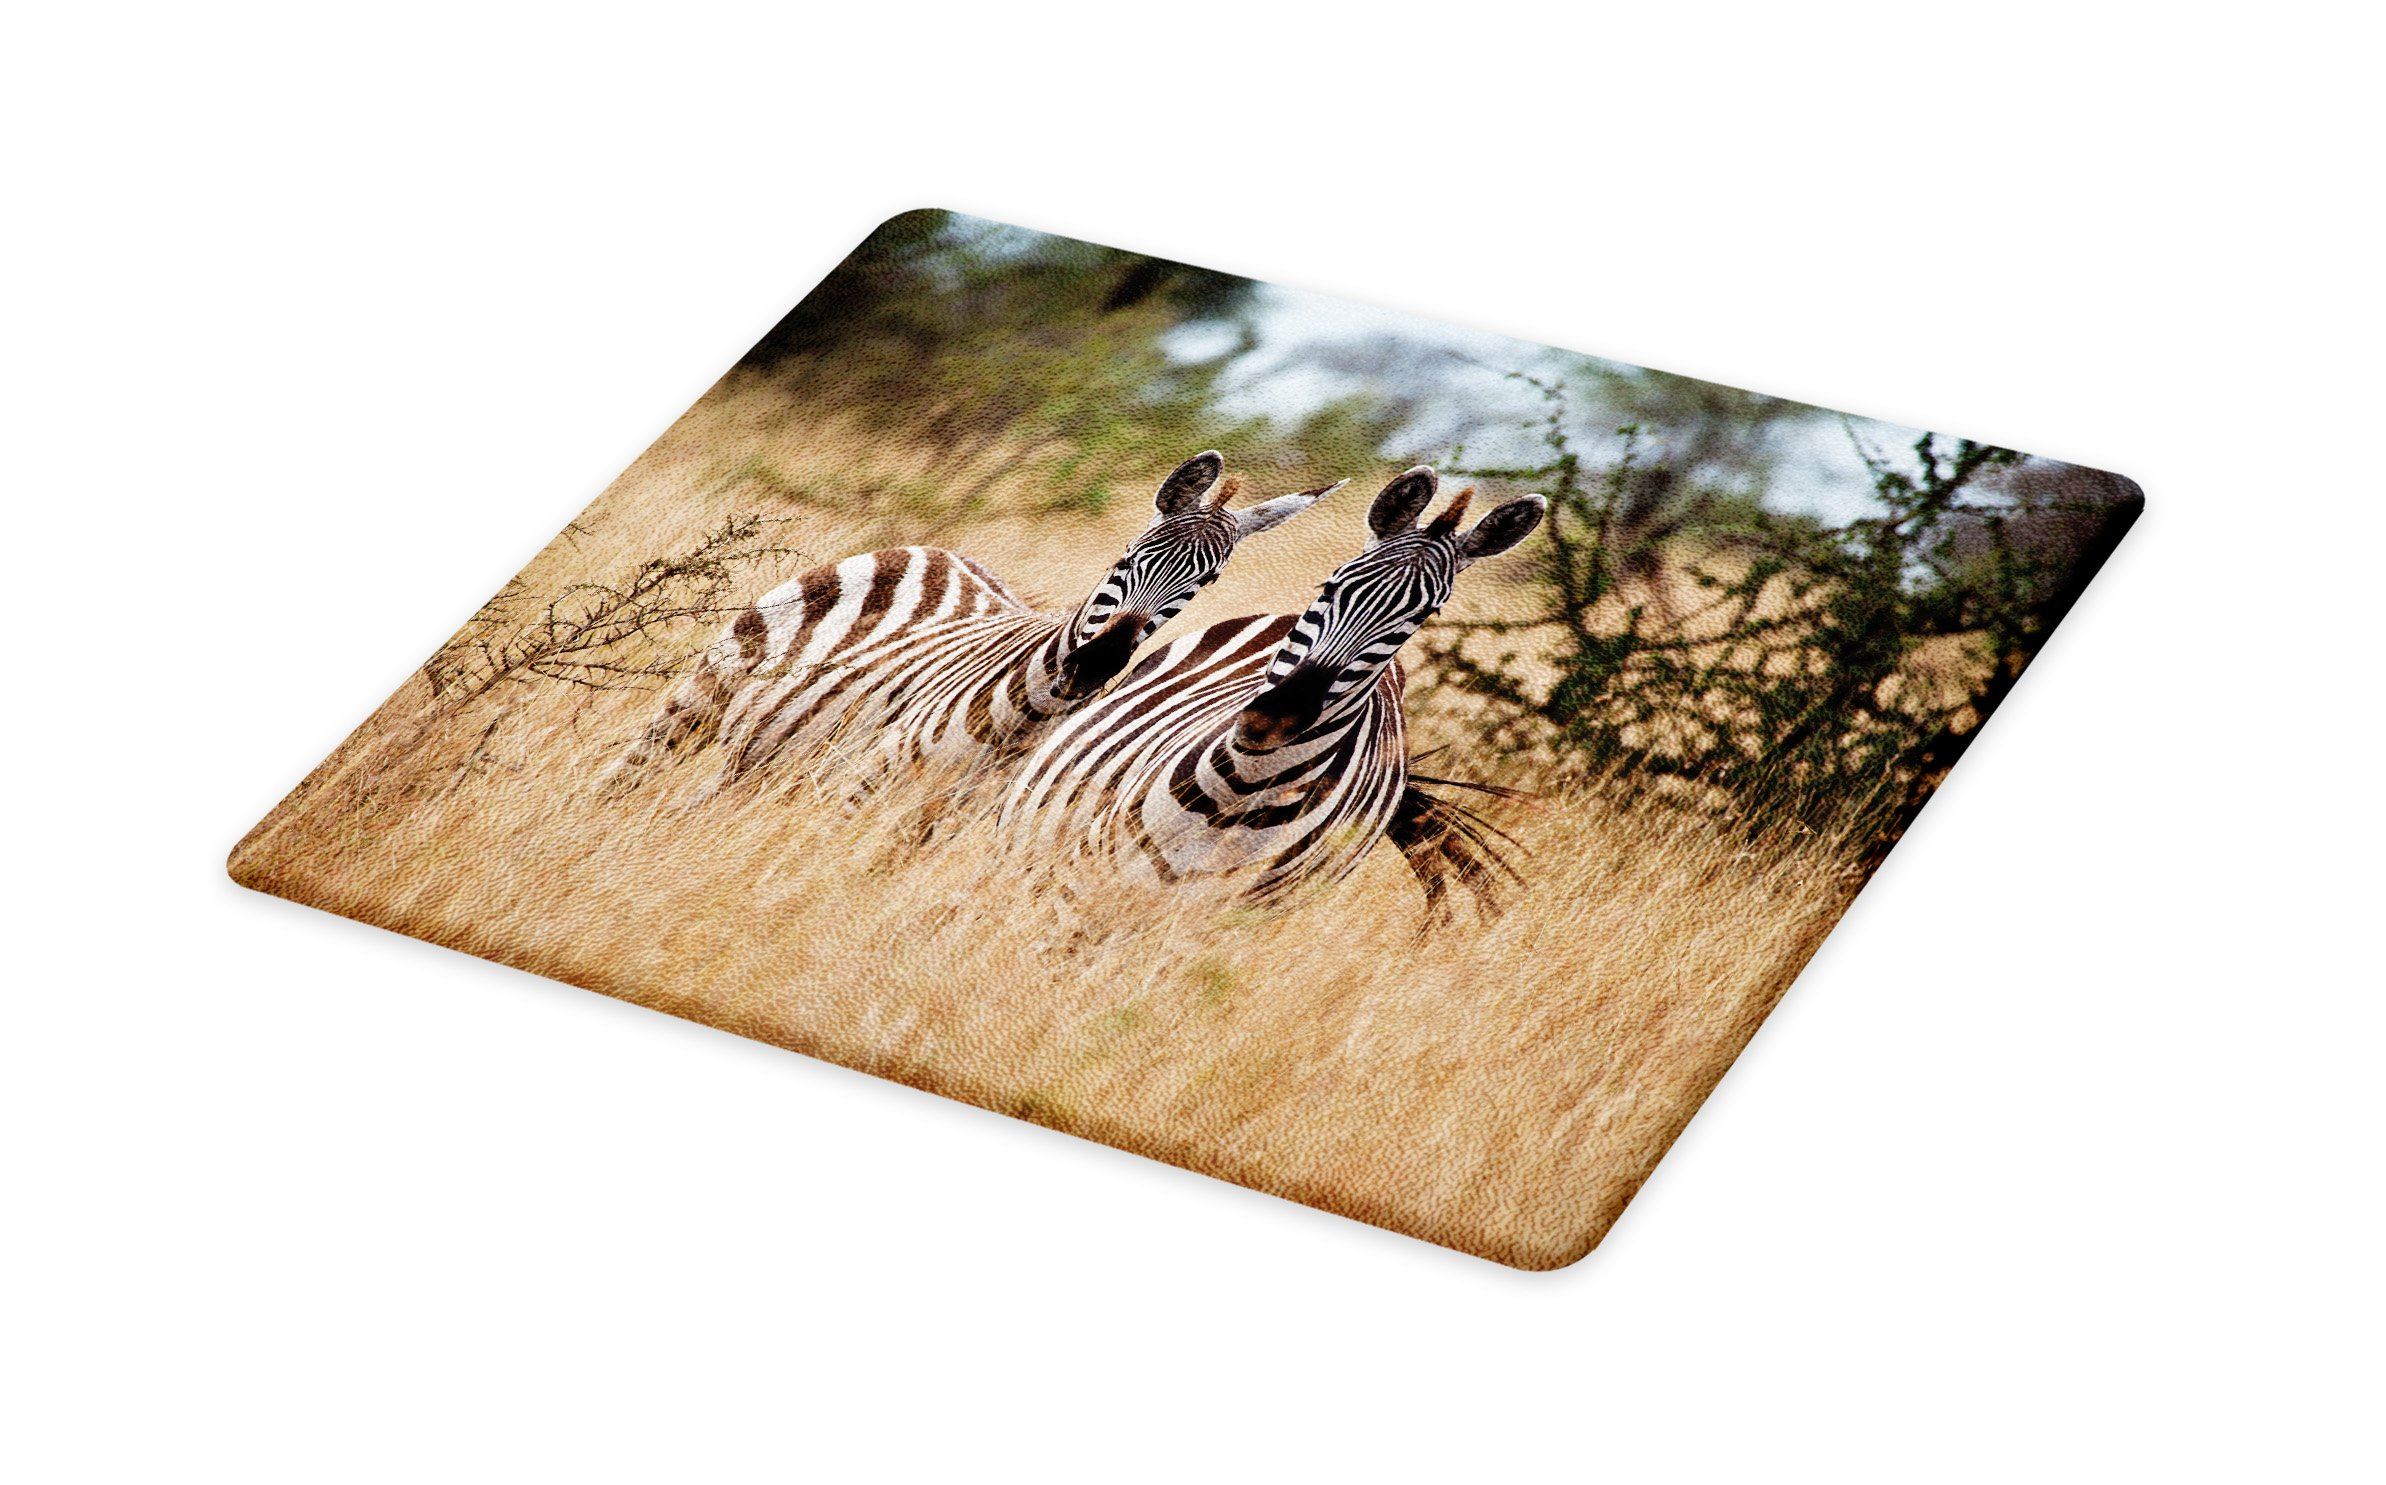 Lunarable Africa Cutting Board, Kenya with Zebras in The High Bushes Looking at The Camera Striped Unique Animal, Decorative Tempered Glass Cutting and Serving Board, Large Size, Multicolor